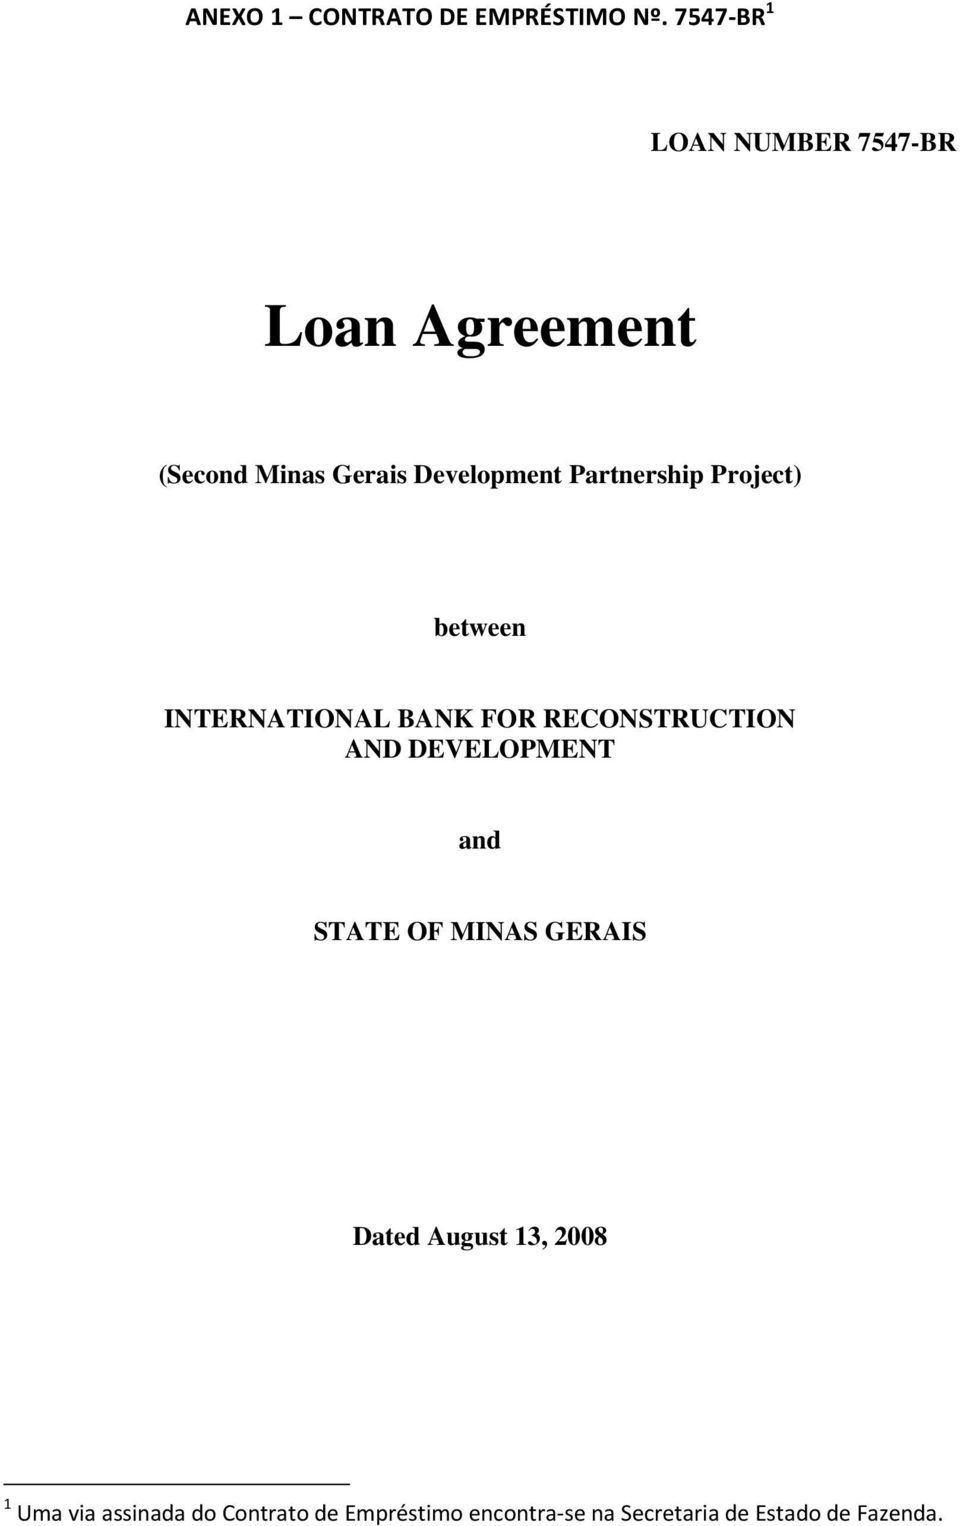 Partnership Project) between INTERNATIONAL BANK FOR RECONSTRUCTION AND DEVELOPMENT